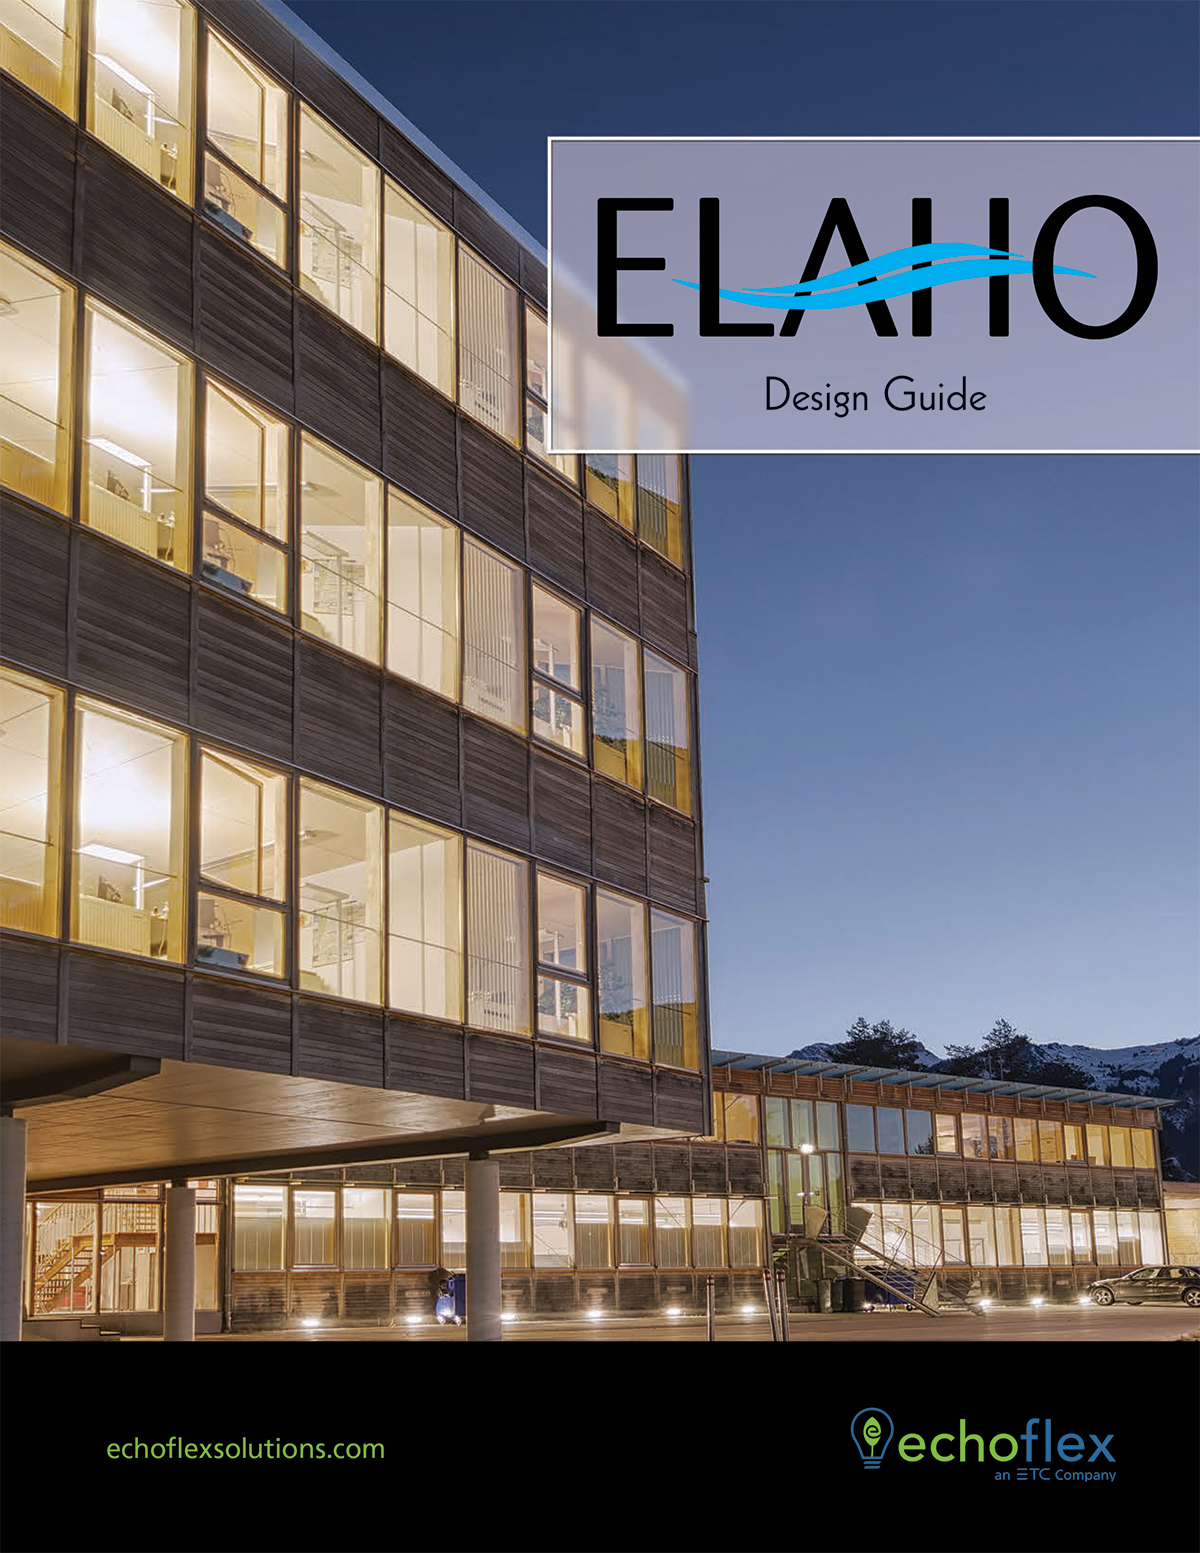 Elaho Design Guide